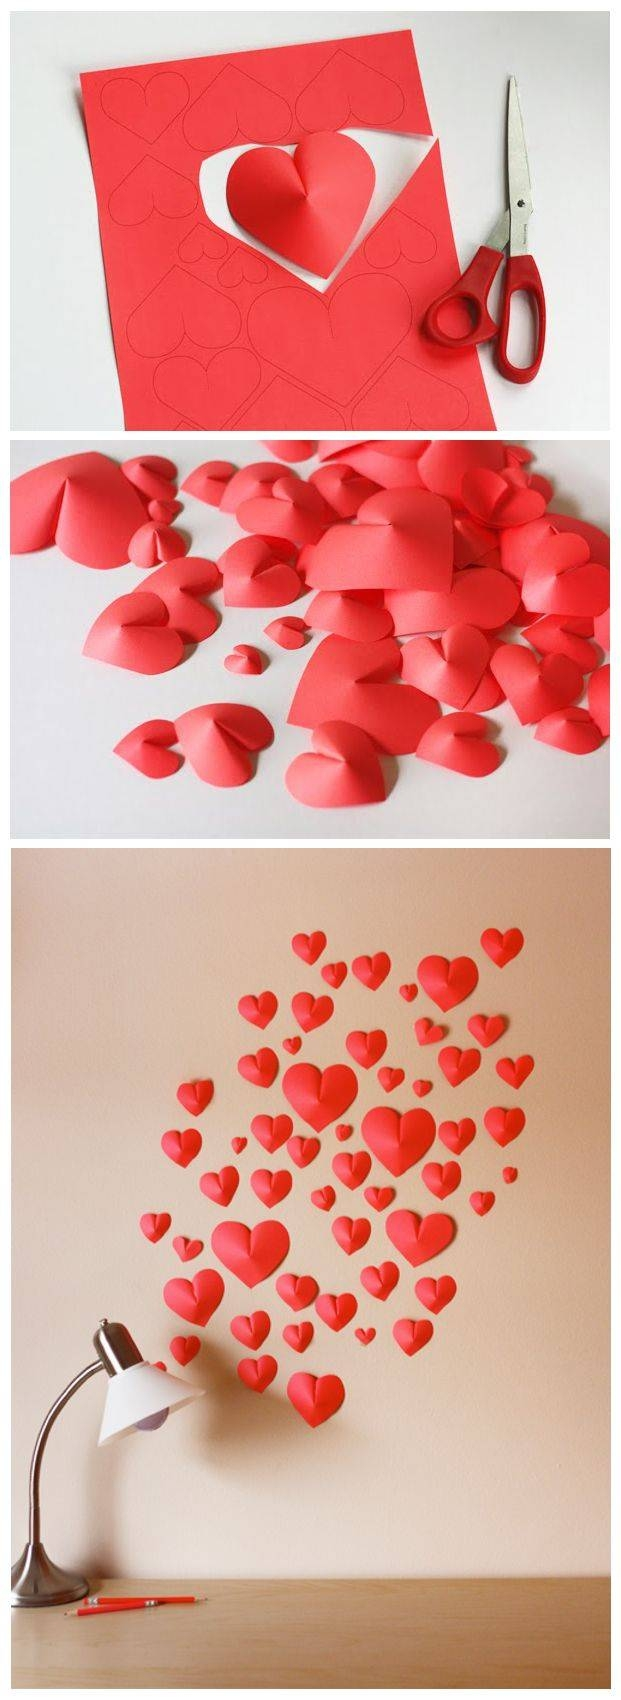 25+ Unique Wall Decoration With Paper Ideas On Pinterest | Paper For Most Up To Date 3d Clouds Out Of Paper Wall Art (View 10 of 25)